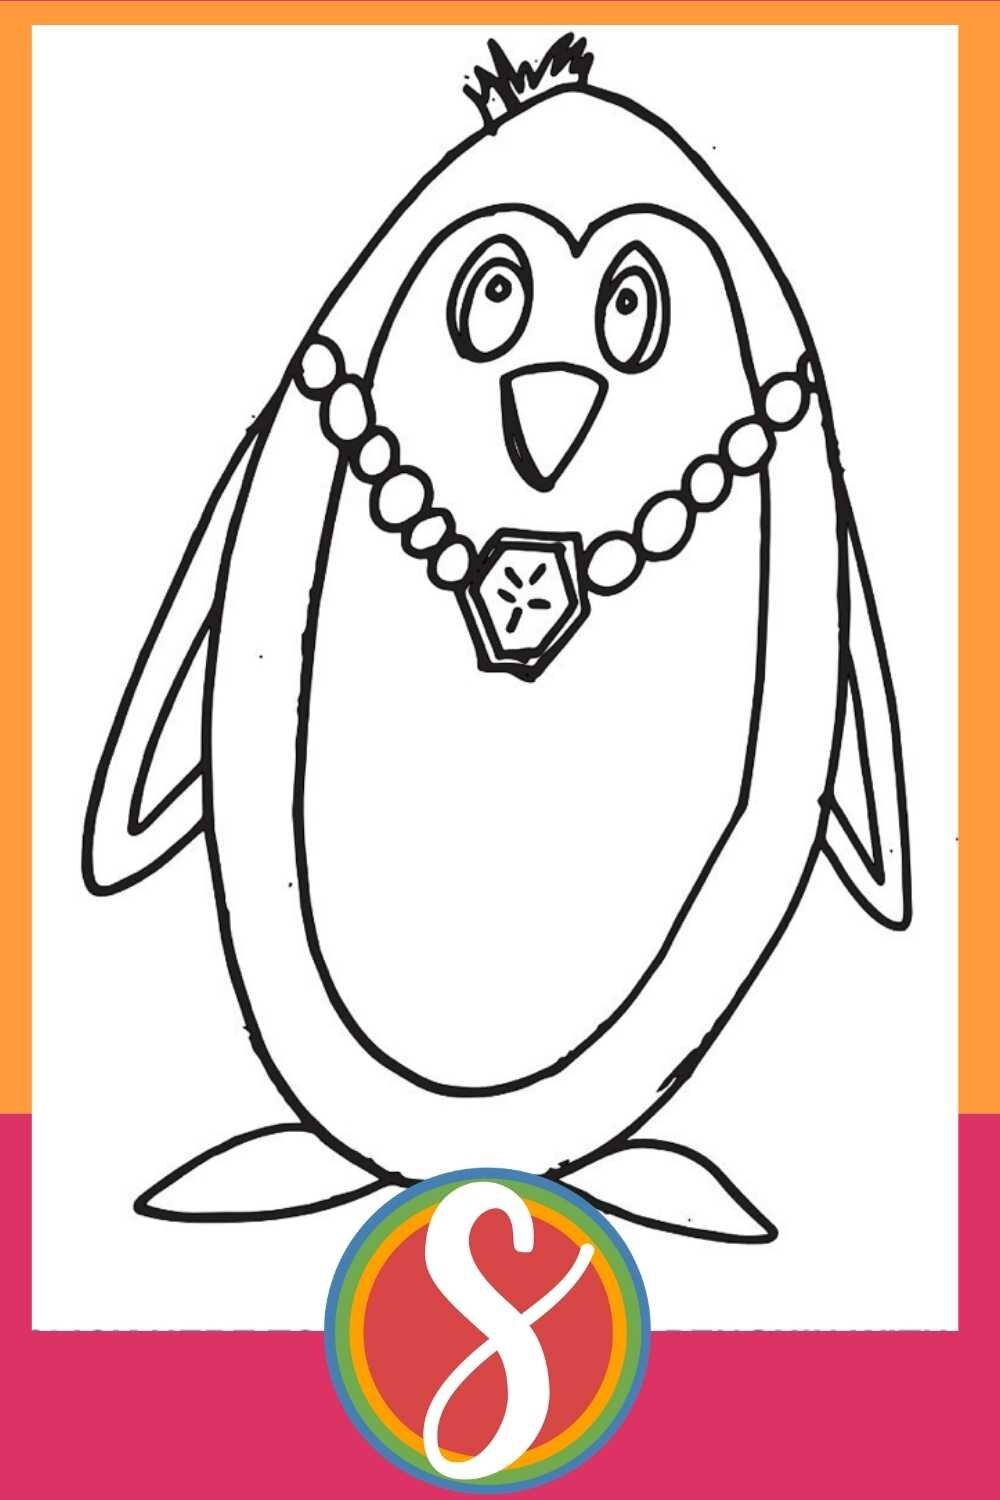 Penguin With A Necklace - A free printable penguin page from Stevie Doodles